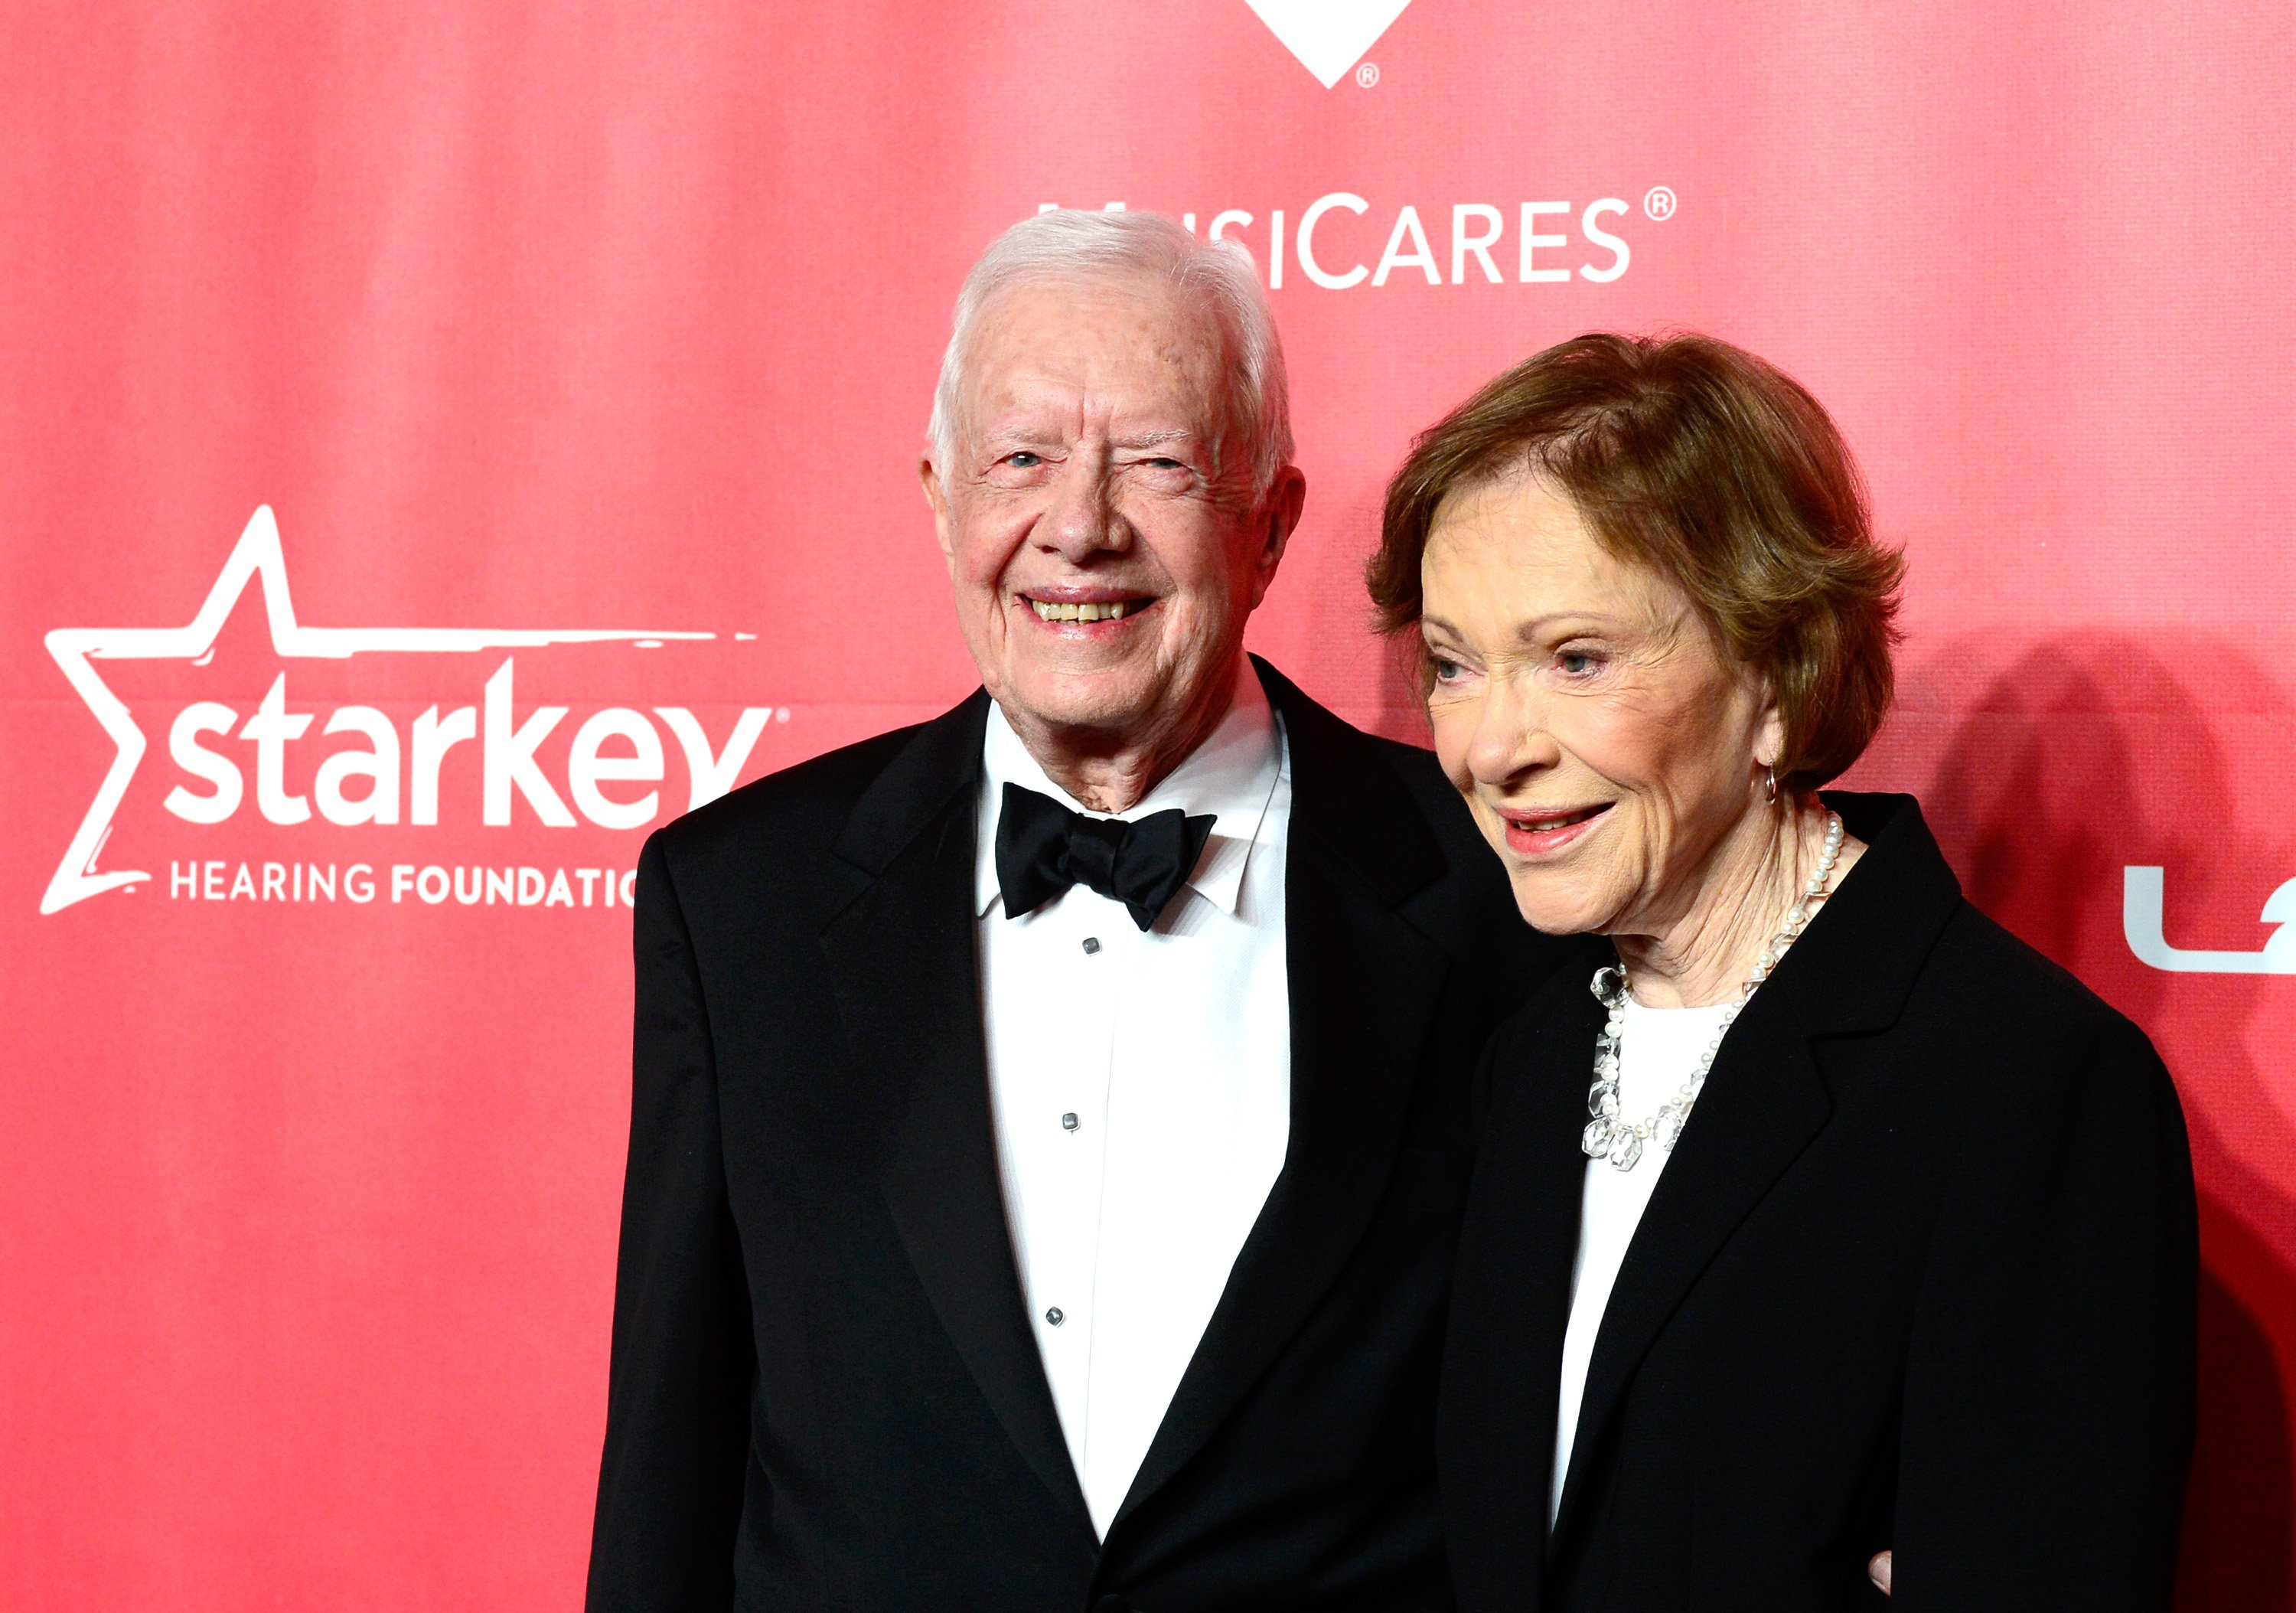 Former U.S. President Jimmy Carter and former First Lady Rosalynn Carter attend the 25th anniversary MusiCares 2015 Person Of The Year Gala on February 6, 2015, in Los Angeles, California. | Source: Getty Images.